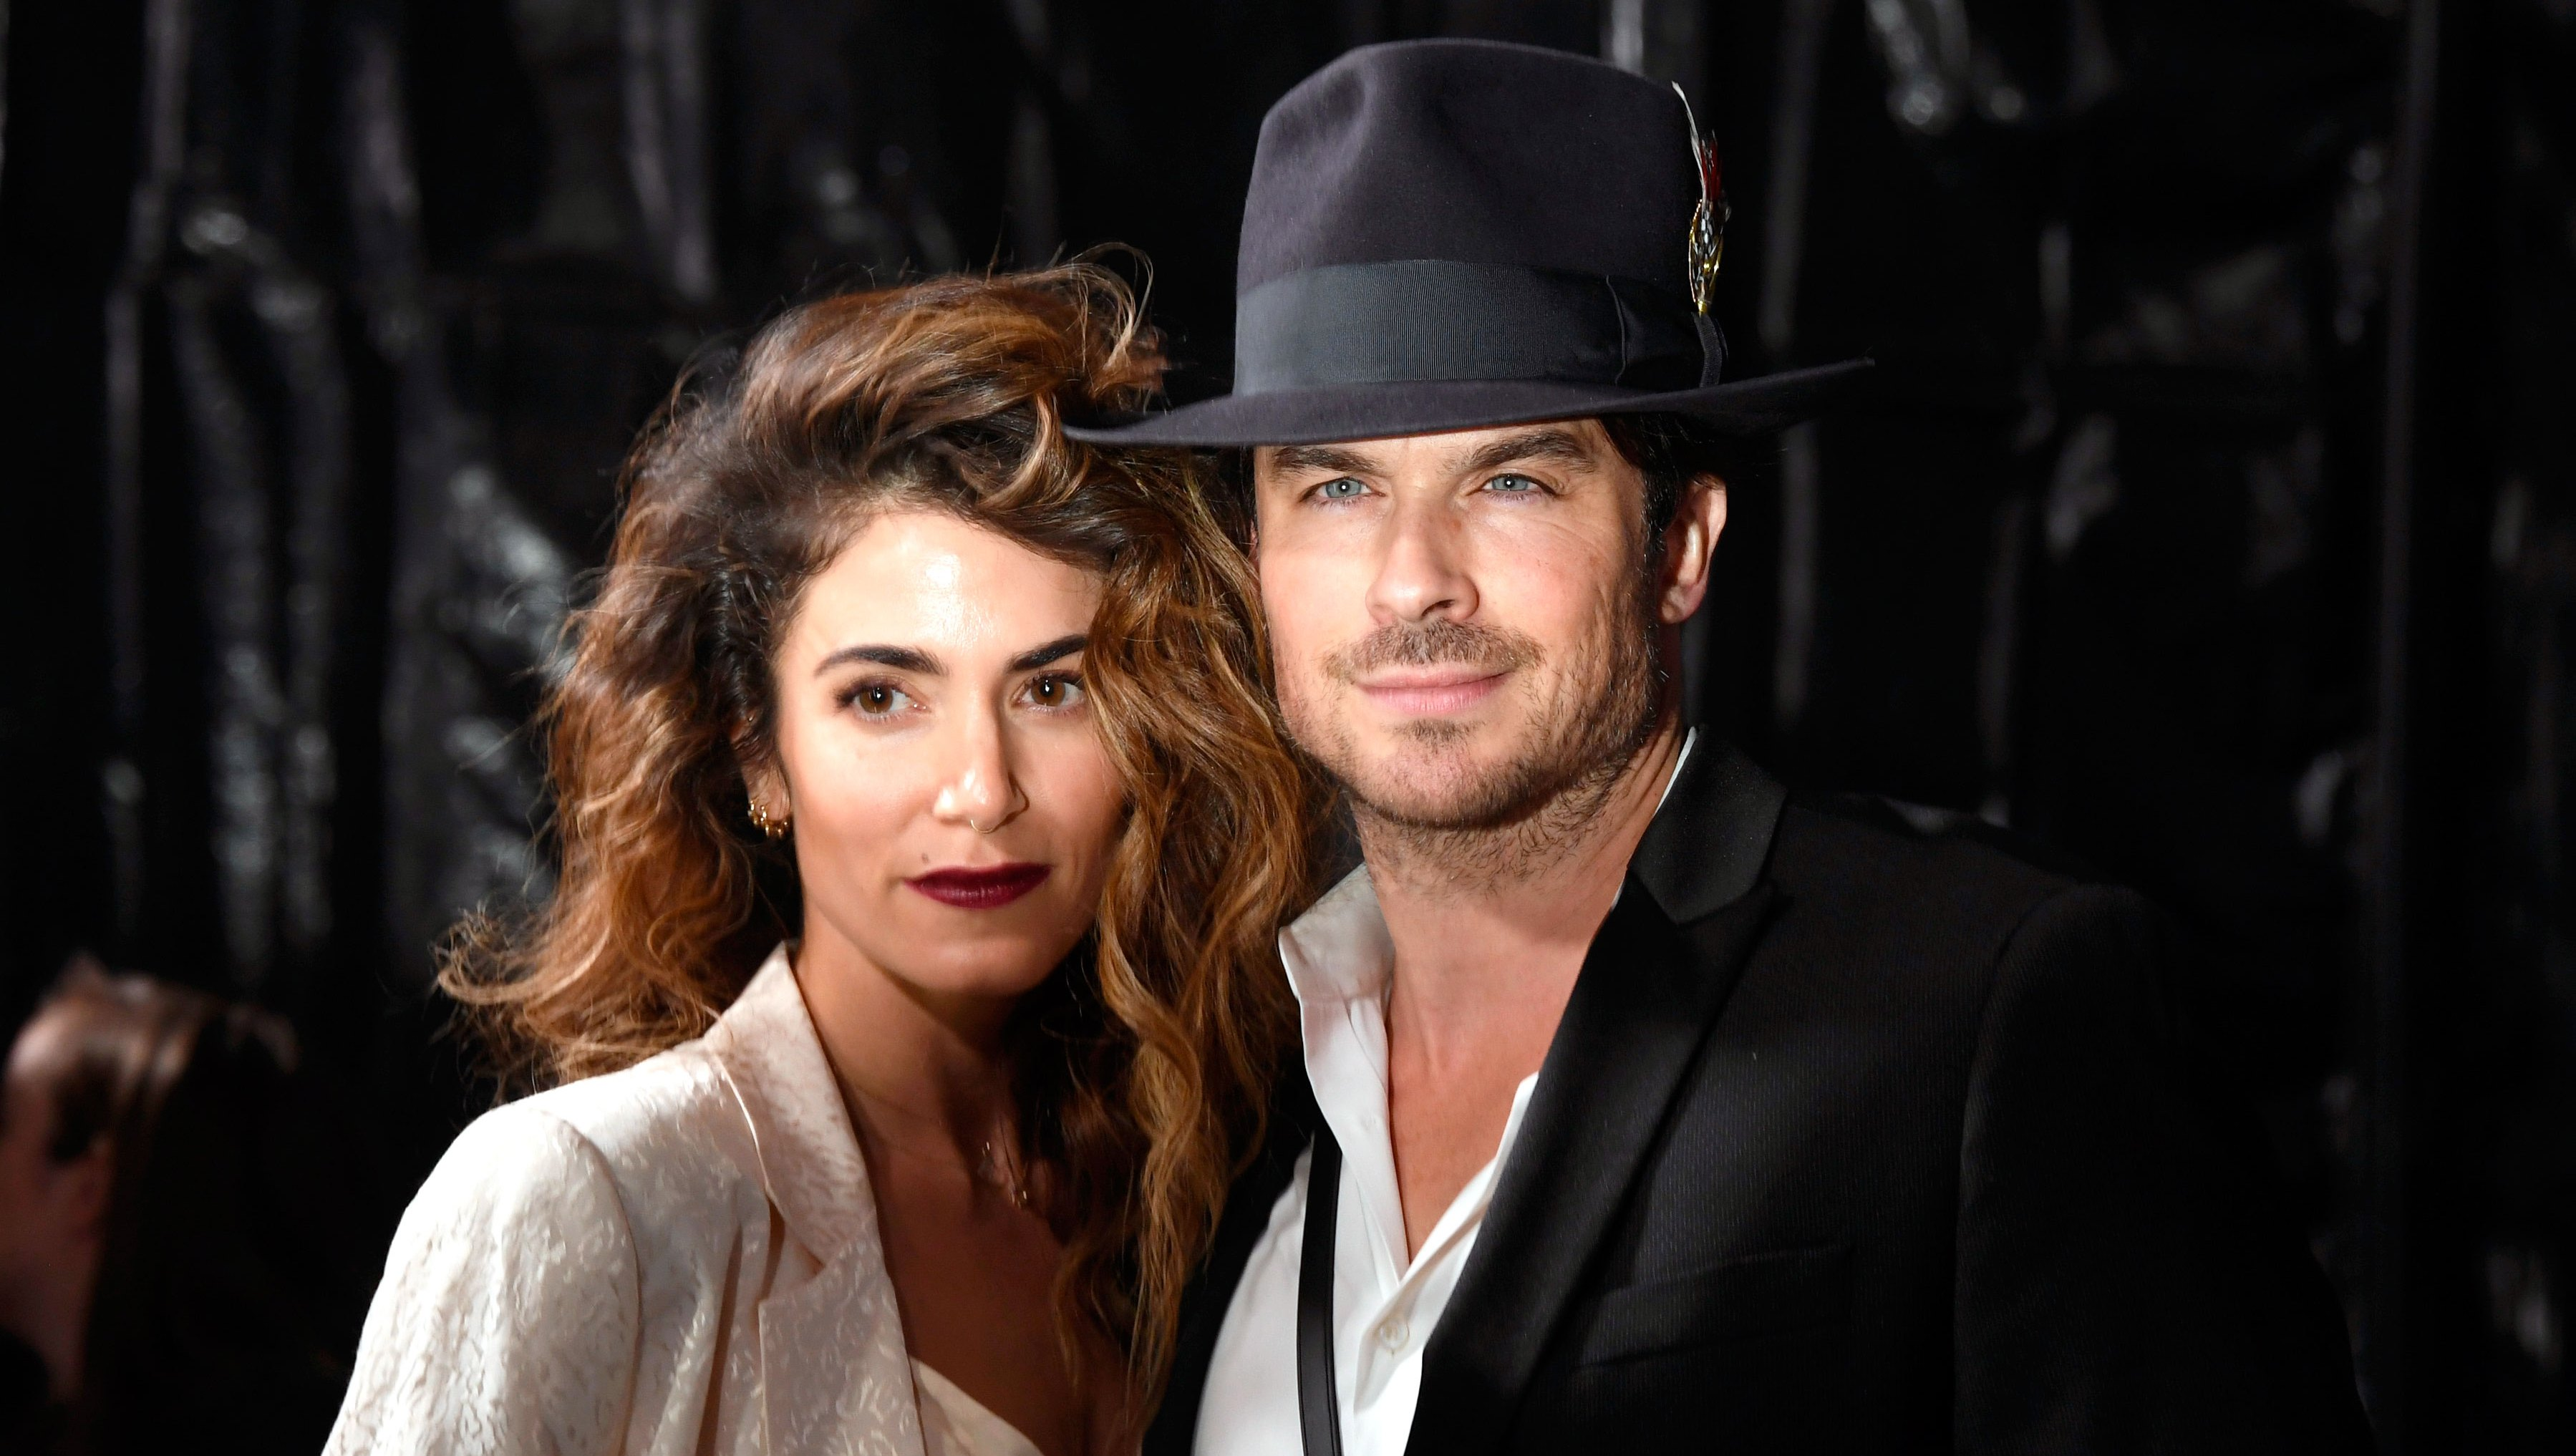 Ian Somerhalder and Nikki Reed Inside 2019's Biggest Pre-Oscars Parties